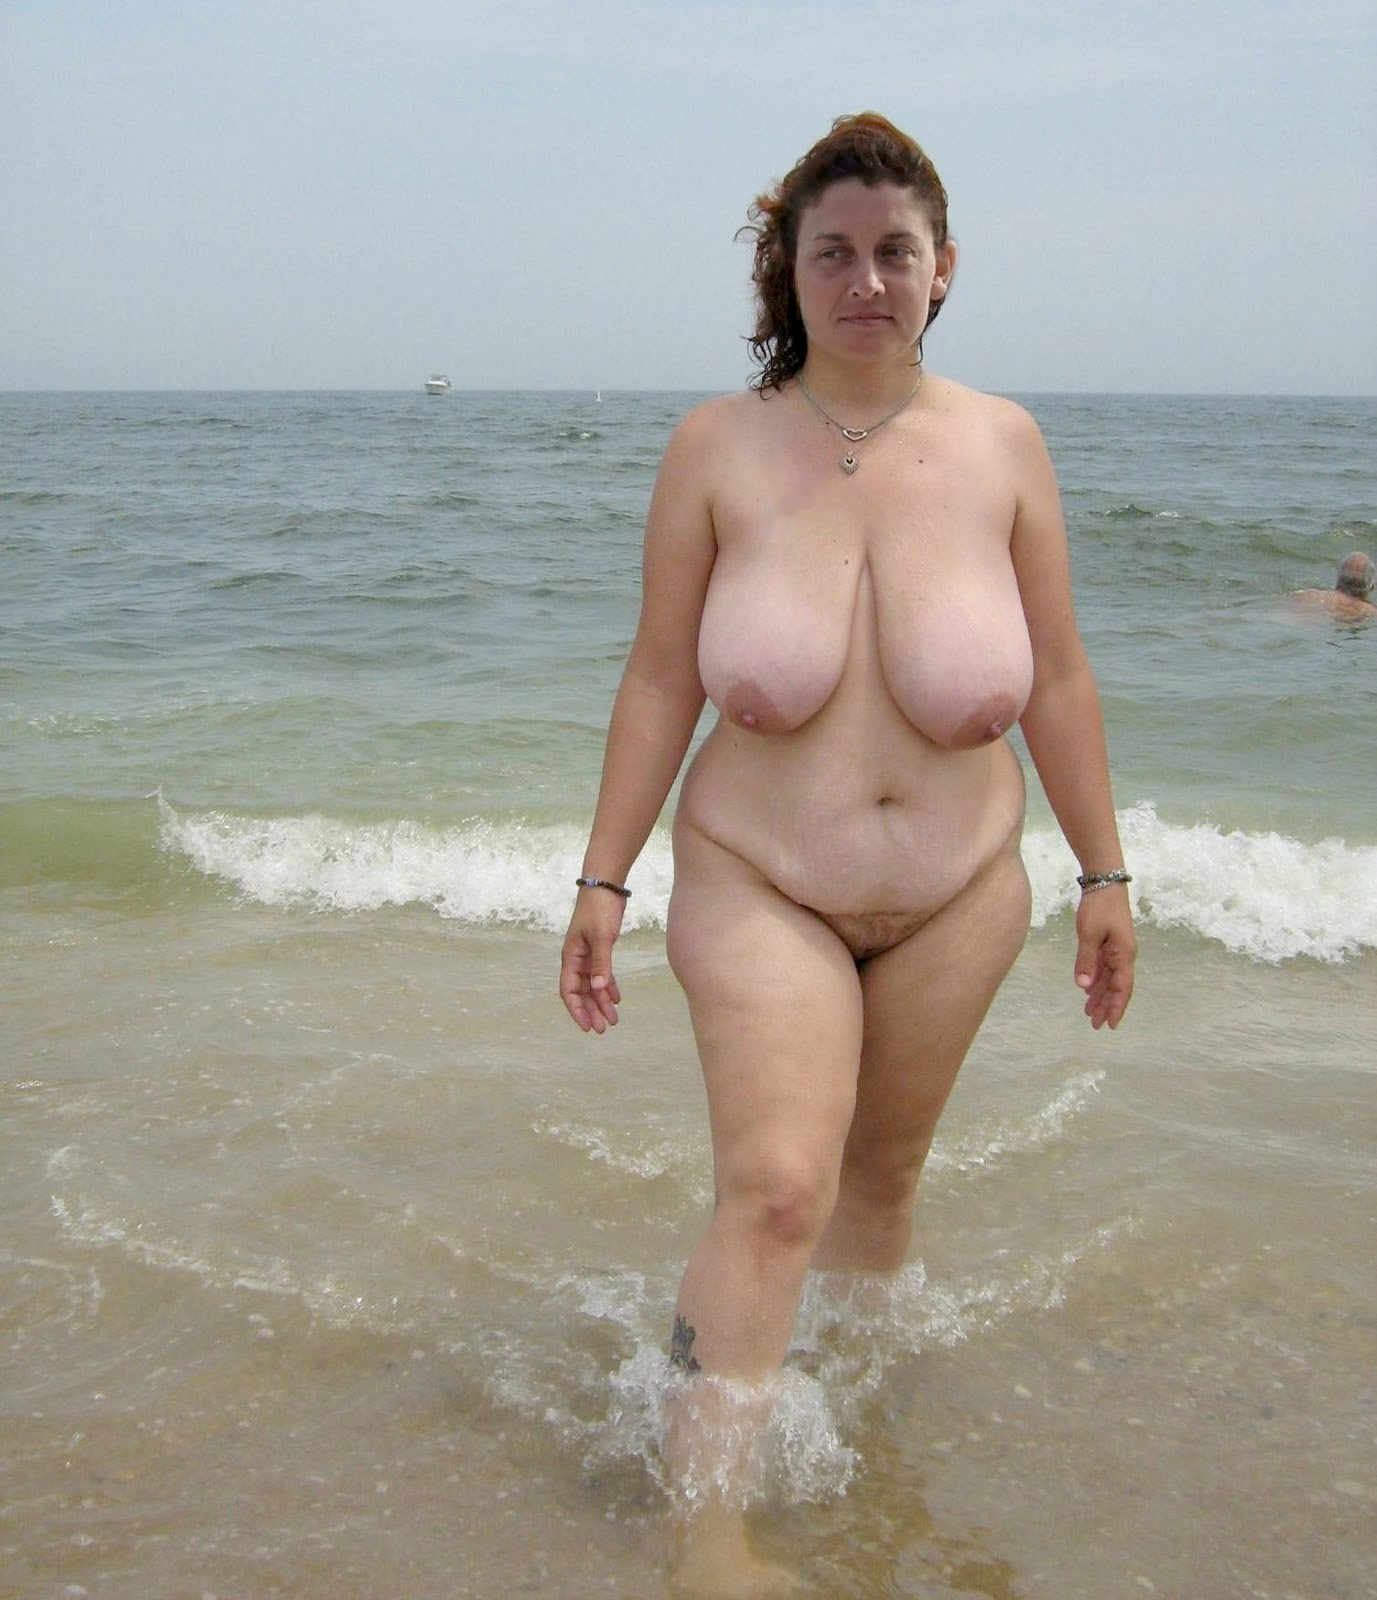 Rather mature nude bbw in bikini me, please